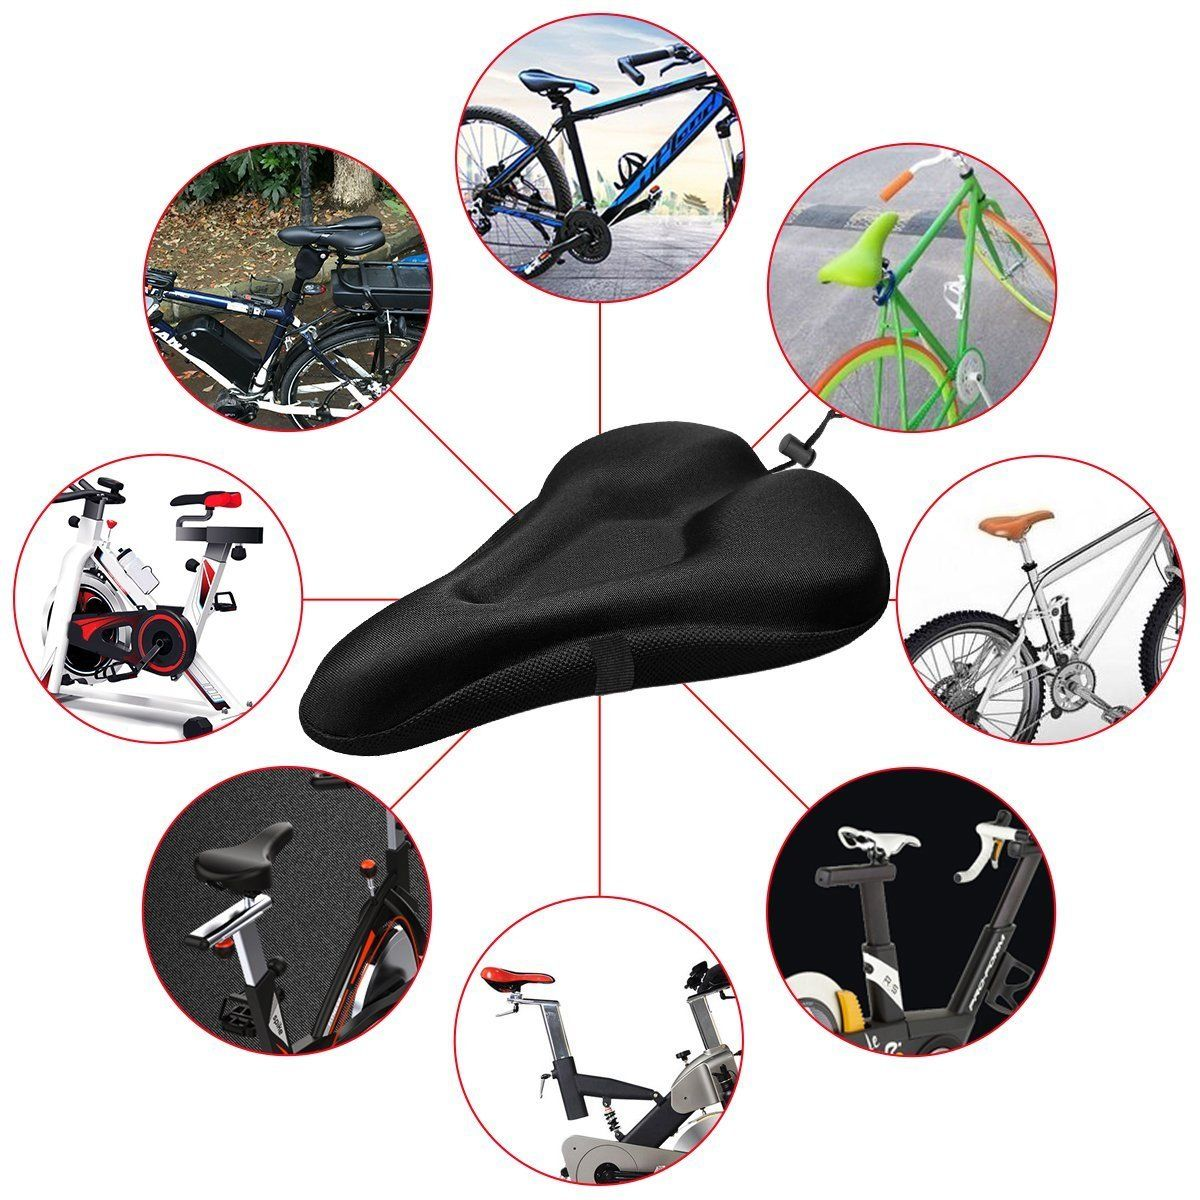 Bike Cycle Bicycle Extra Comfort Gel Pad Cushion Cover For Saddle Seat Comfy Jr